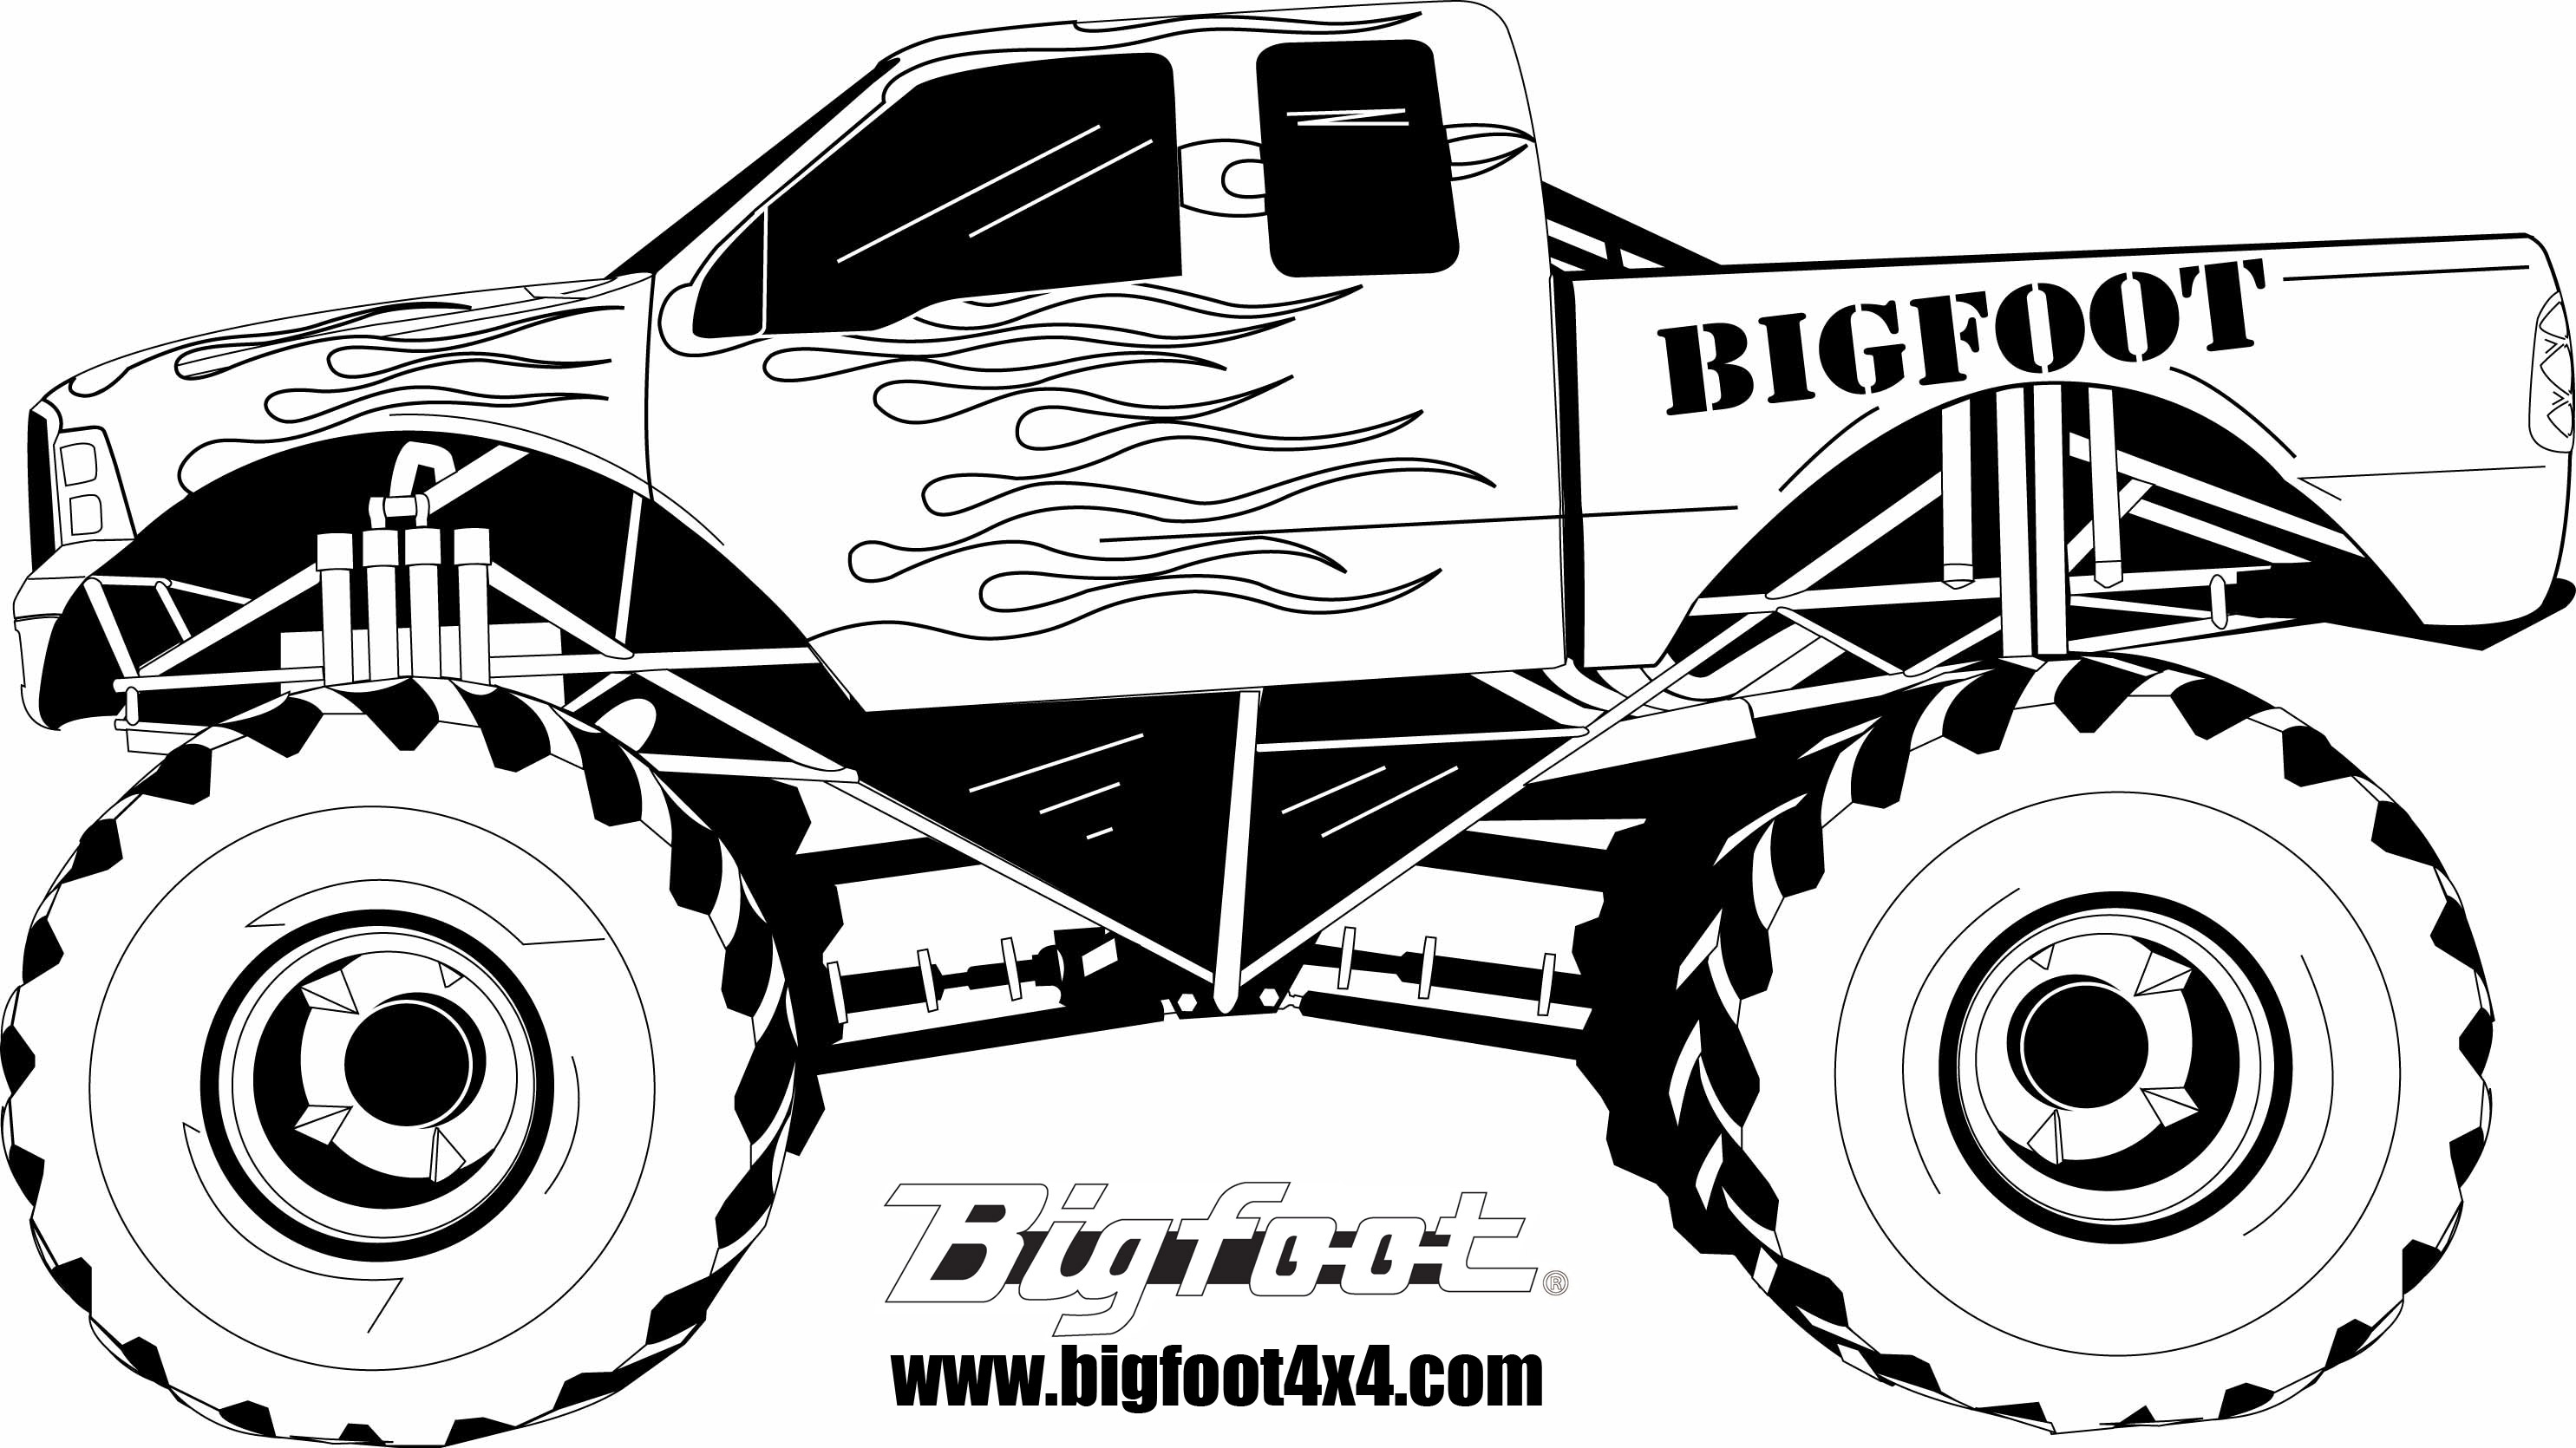 coloring truck clipart black and white pickup truck truck clipart to download dbclipart image 39258 black truck and coloring clipart white